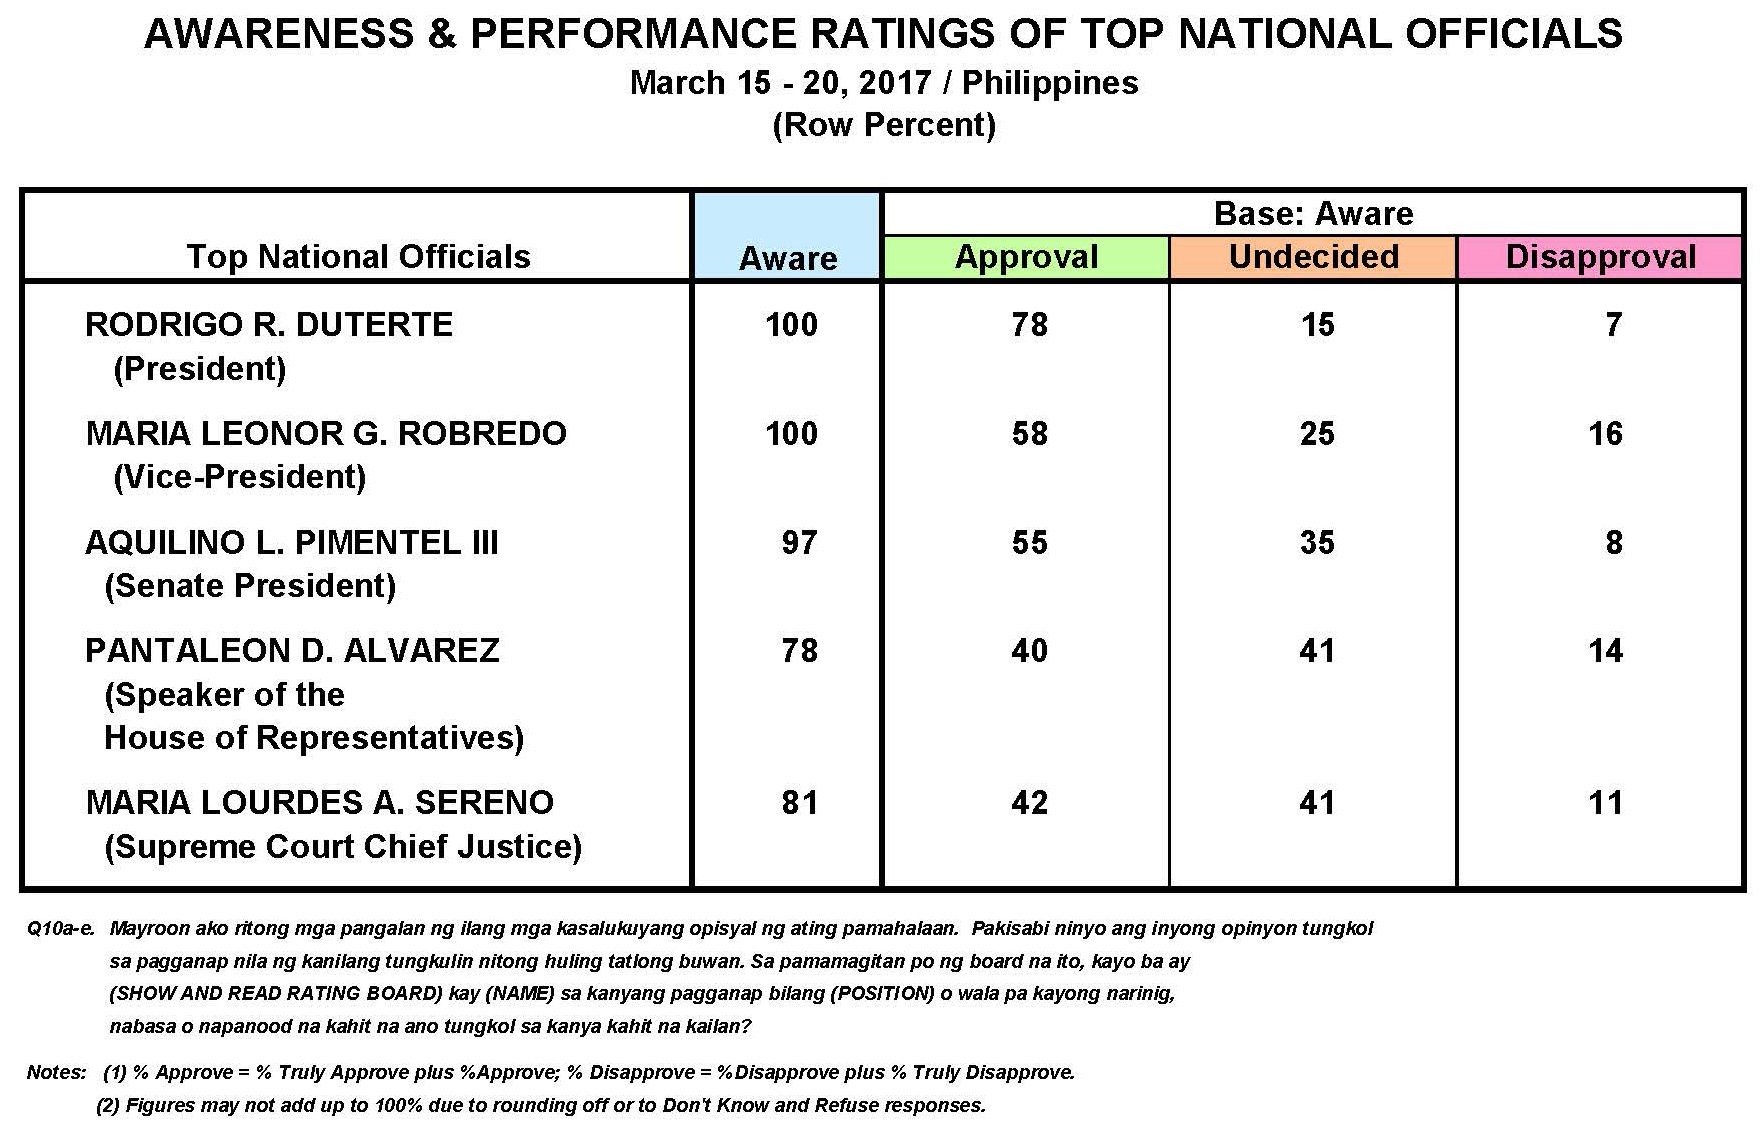 March 2017 Nationwide Survey on the Performance and Trust Ratings of the Top Five Philippine Government Officials